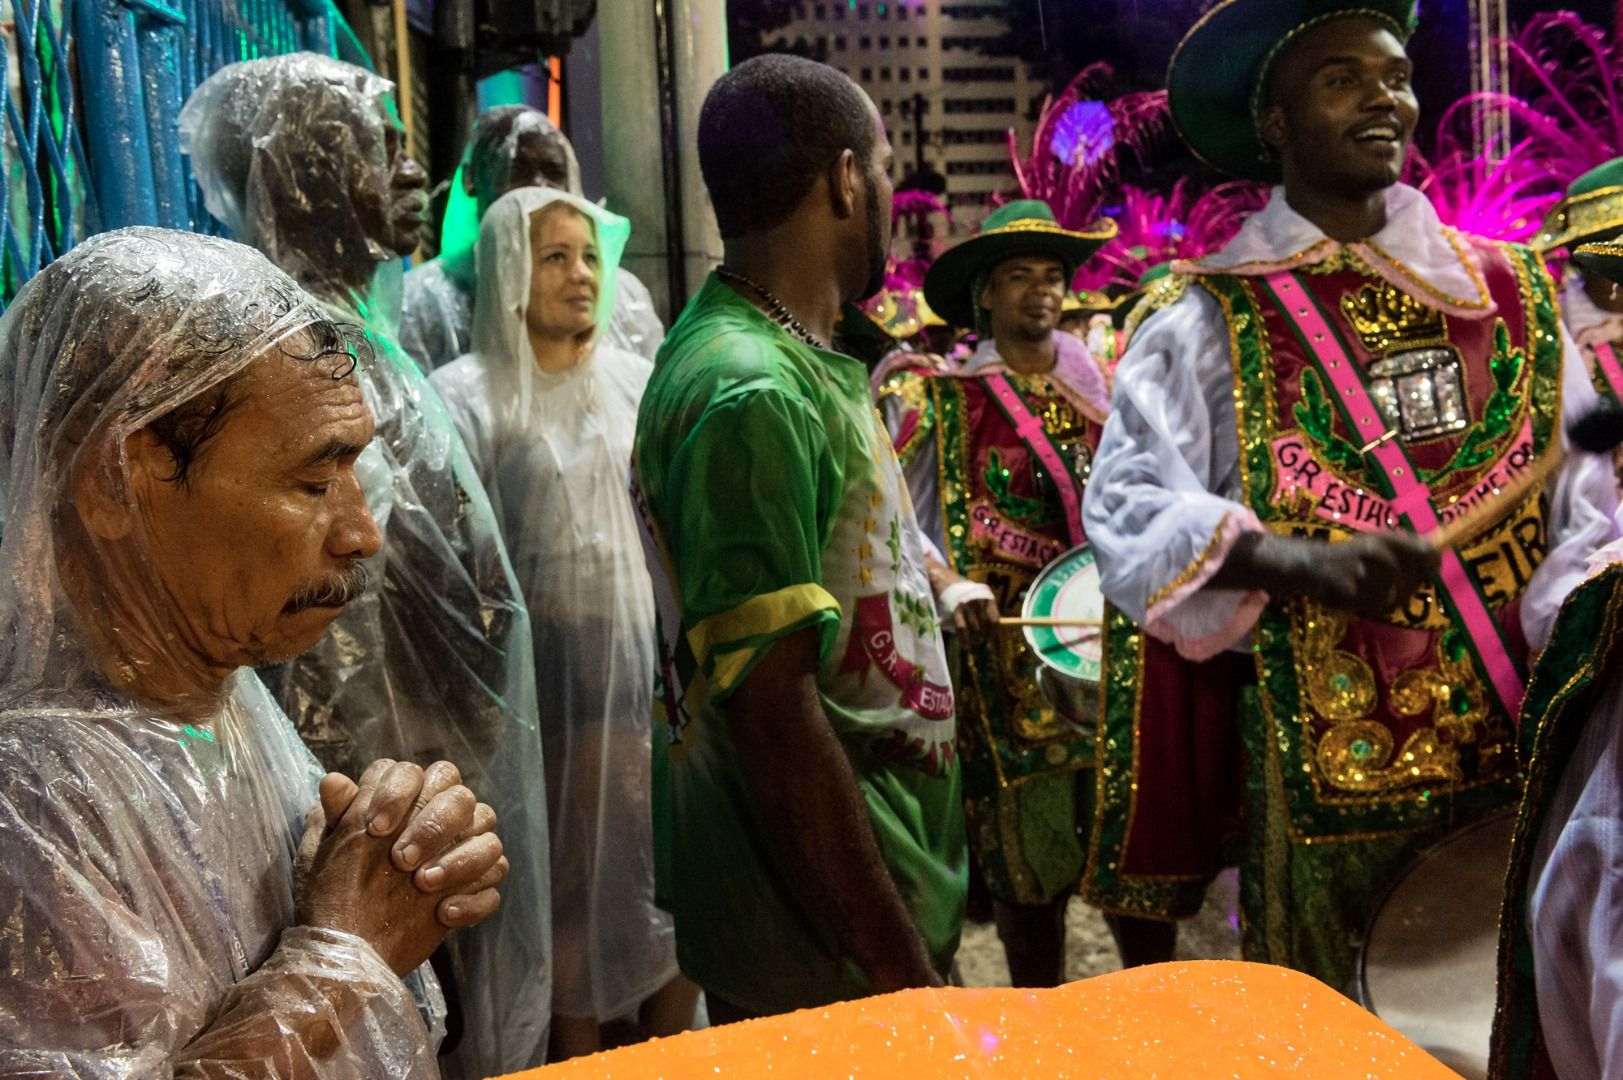 The Other Side of Carnival: Rio de Janeiro, 2015